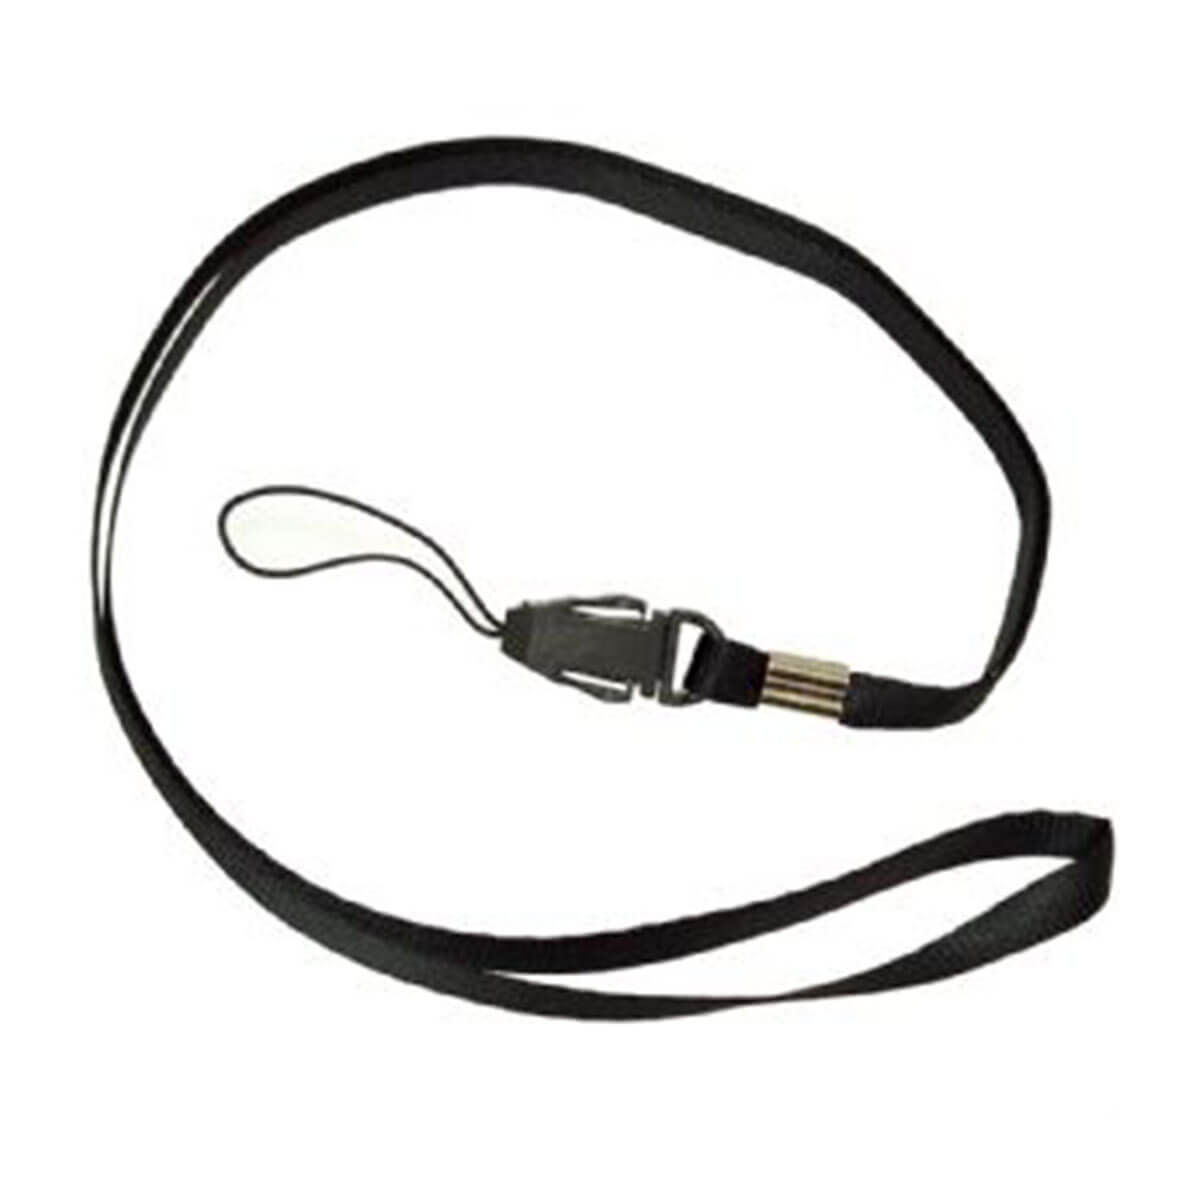 USB Plain Lanyard – Stocked-Black.